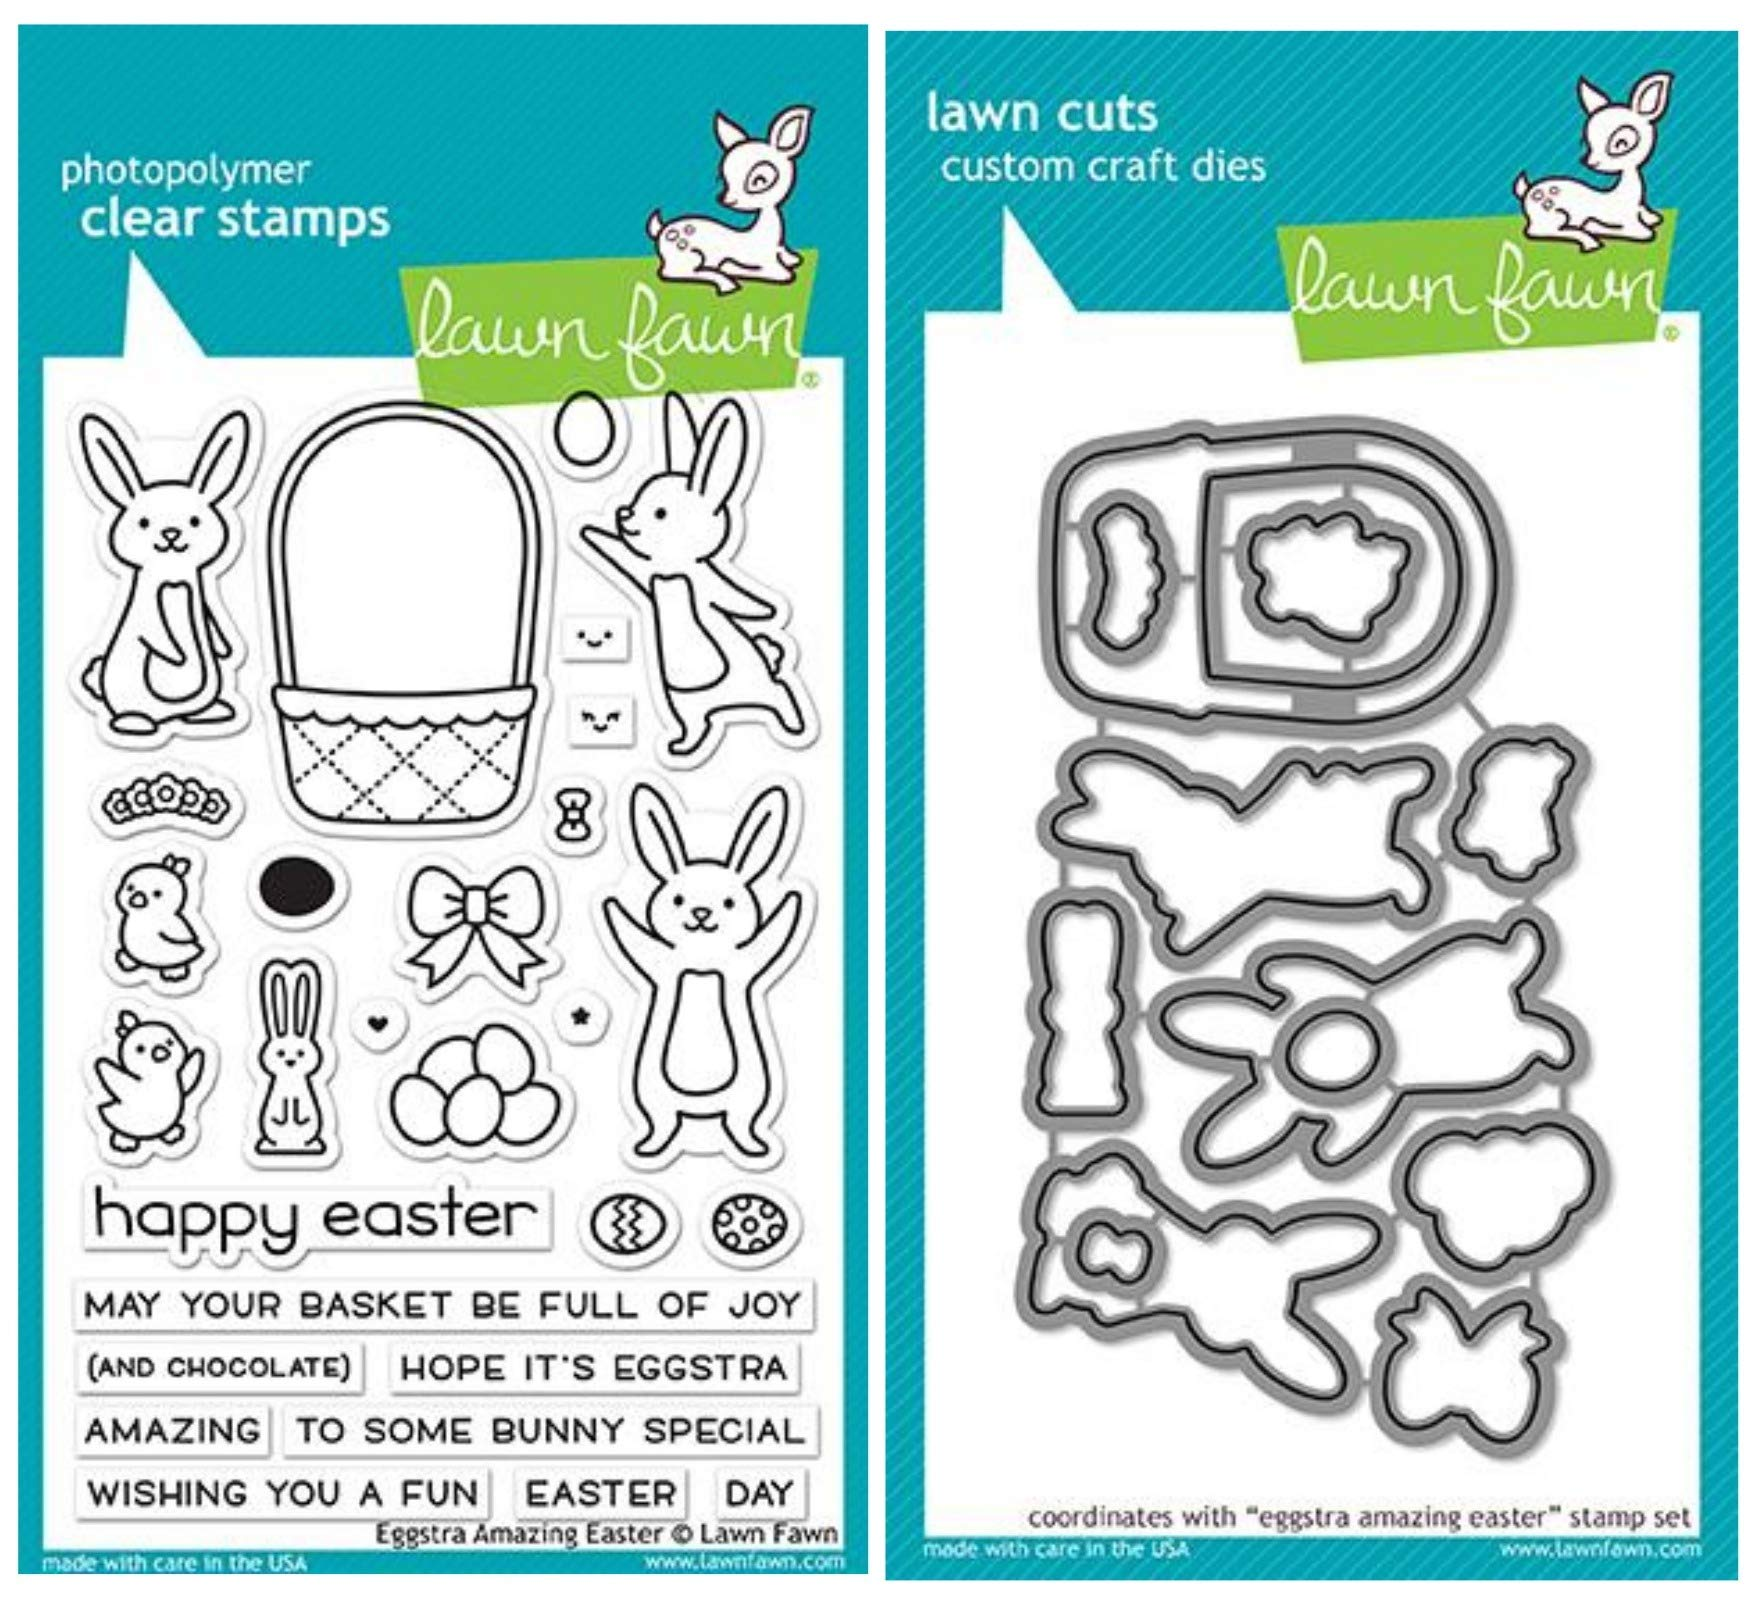 Lawn Fawn Eggstra Amazing Easter 4''x6'' Clear Stamp Set and Matching Lawn Cut Dies (LF1884, LF1885), Bundle of Two Items